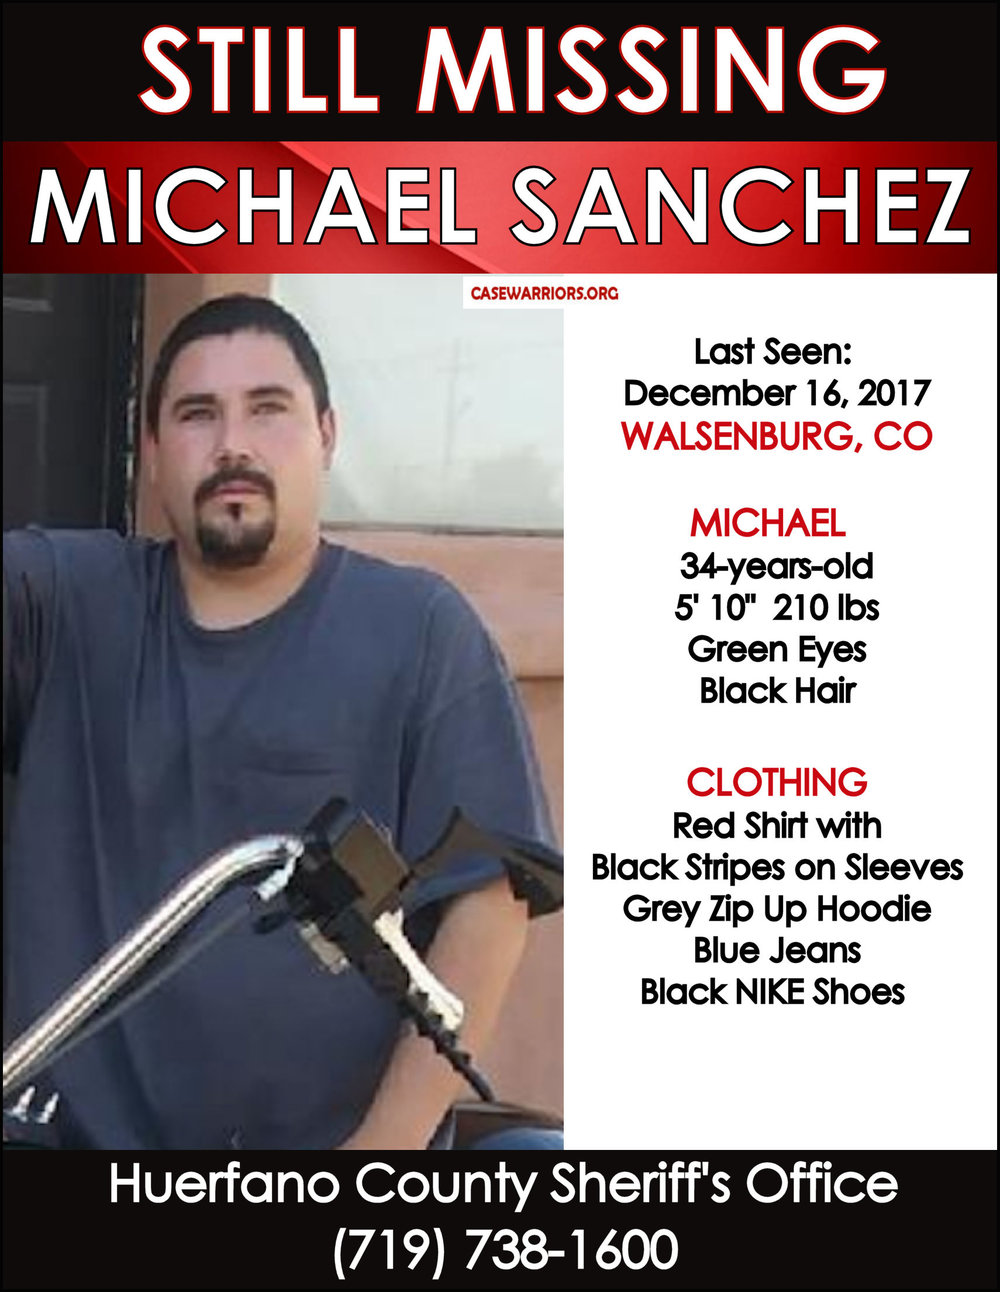 MICHAEL SANCHEZ